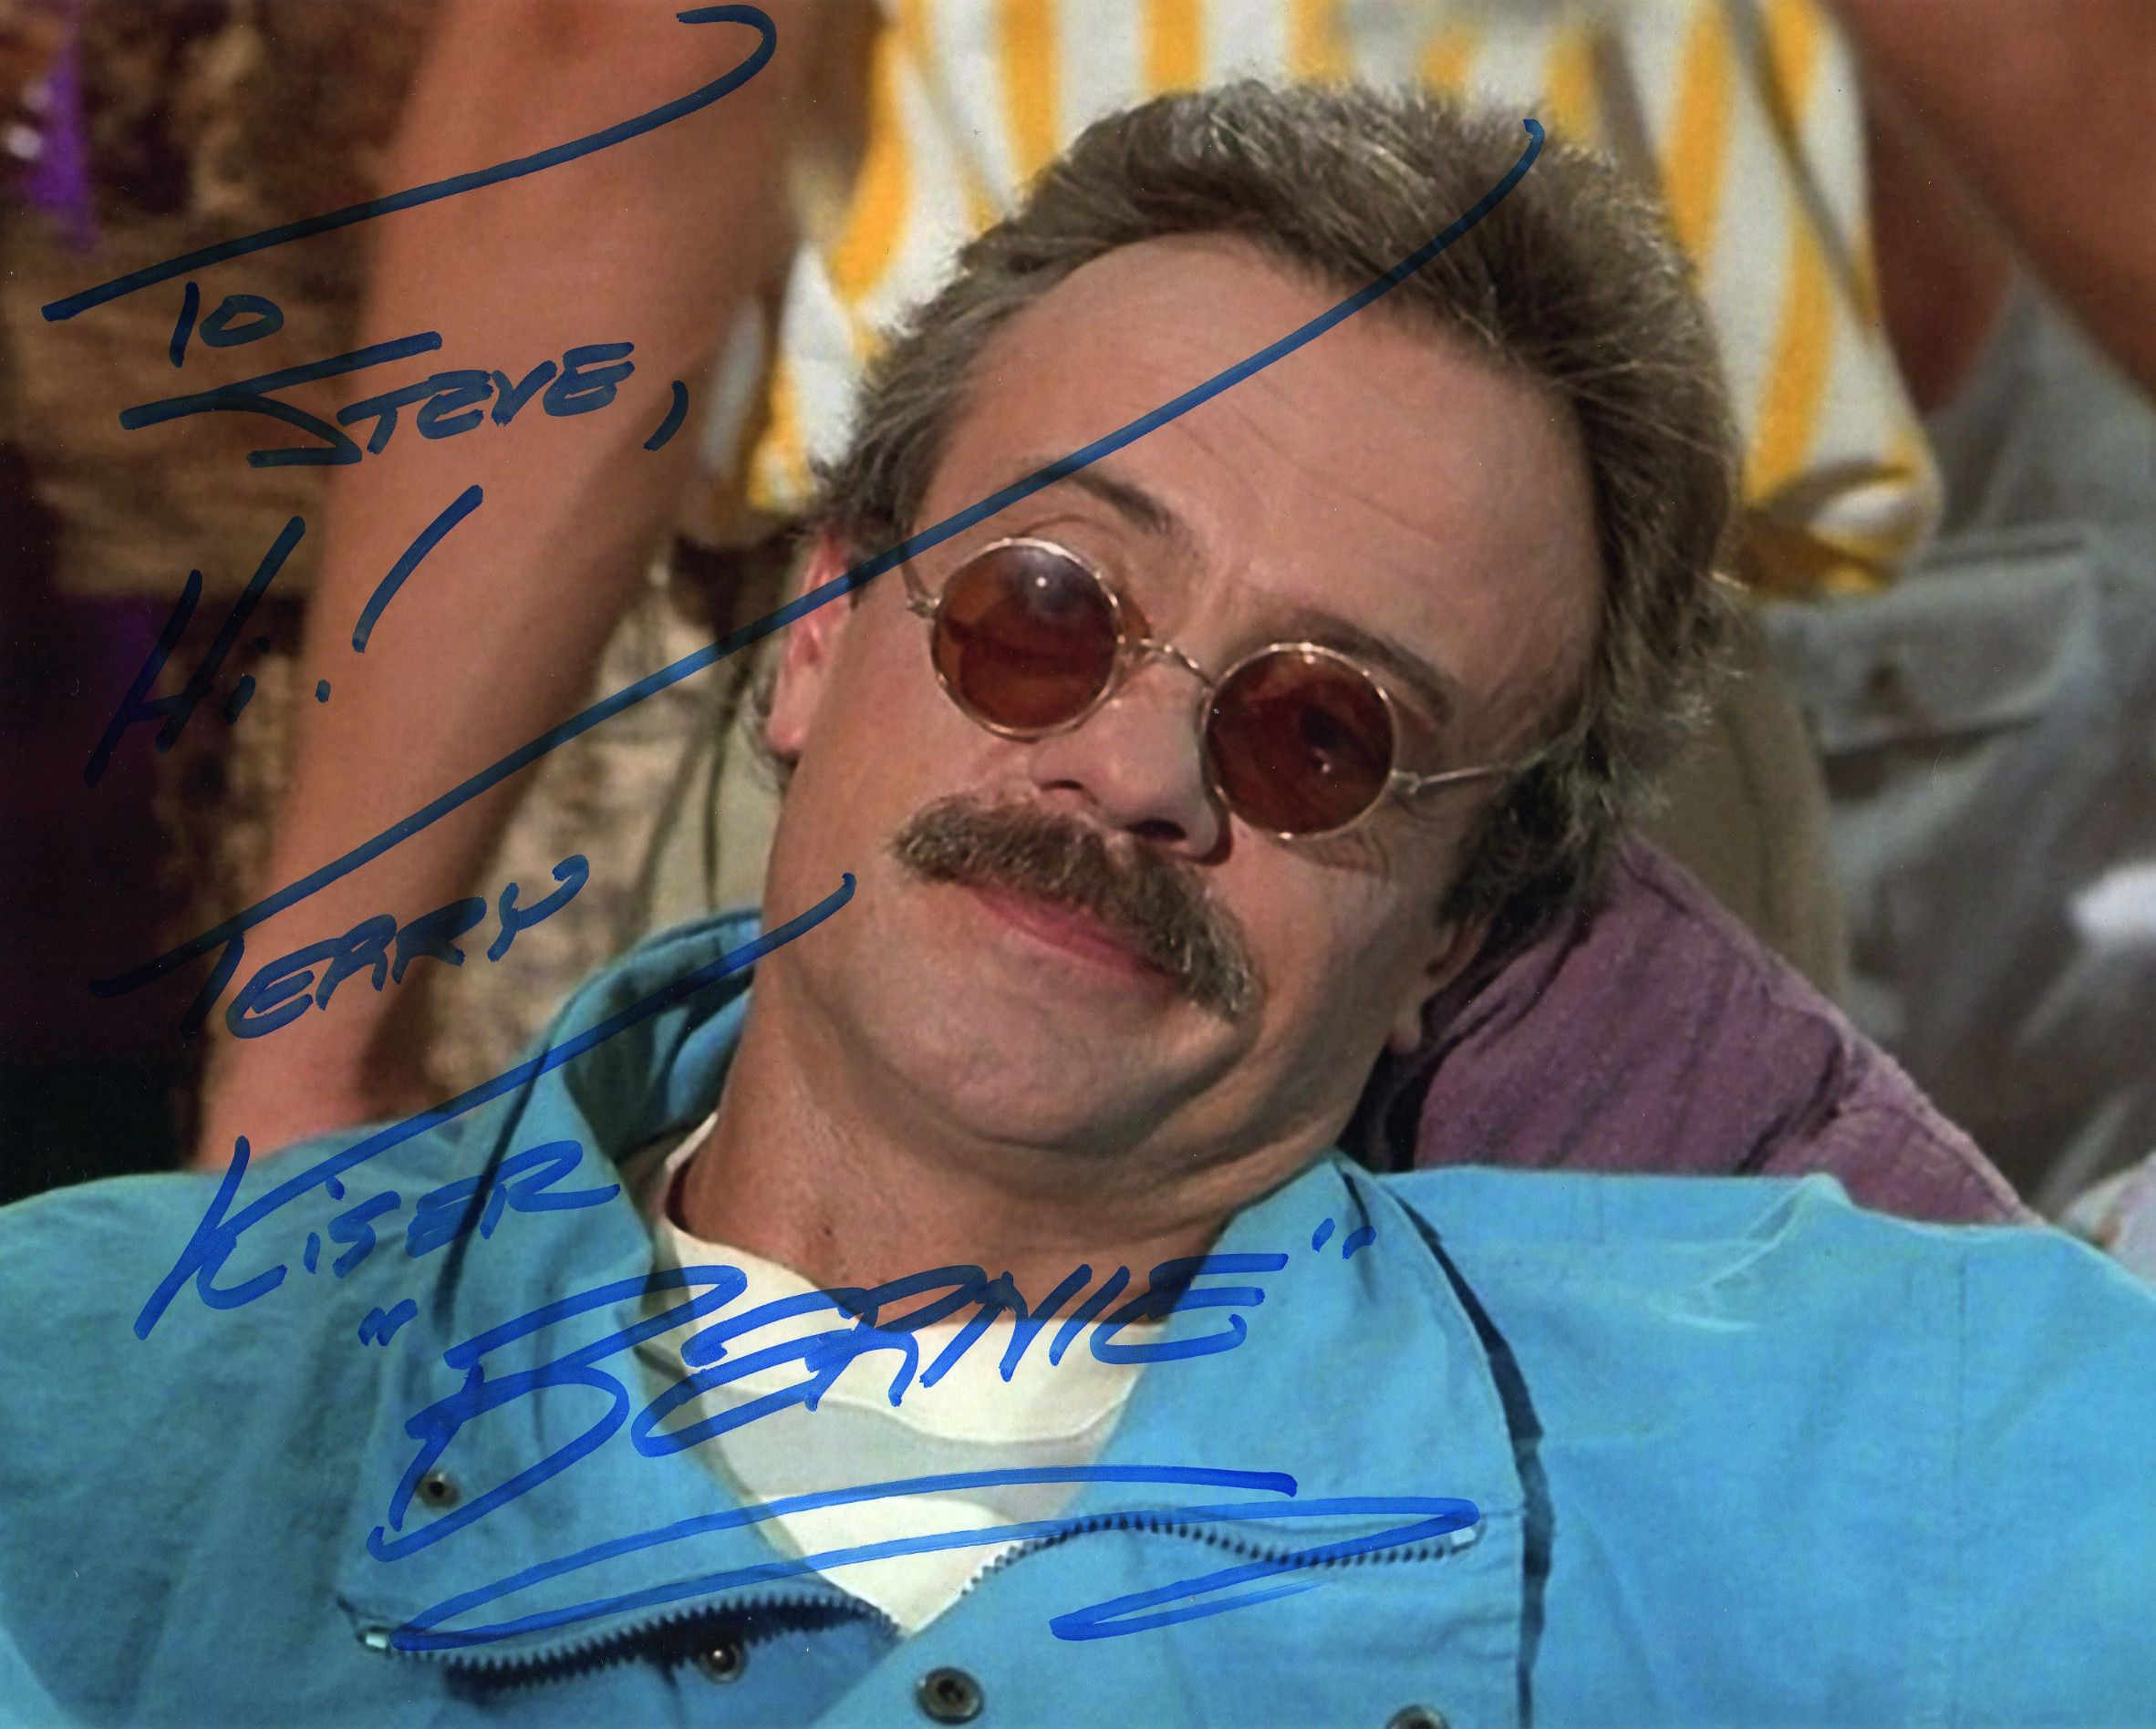 Pin on misc movie autographs inperson